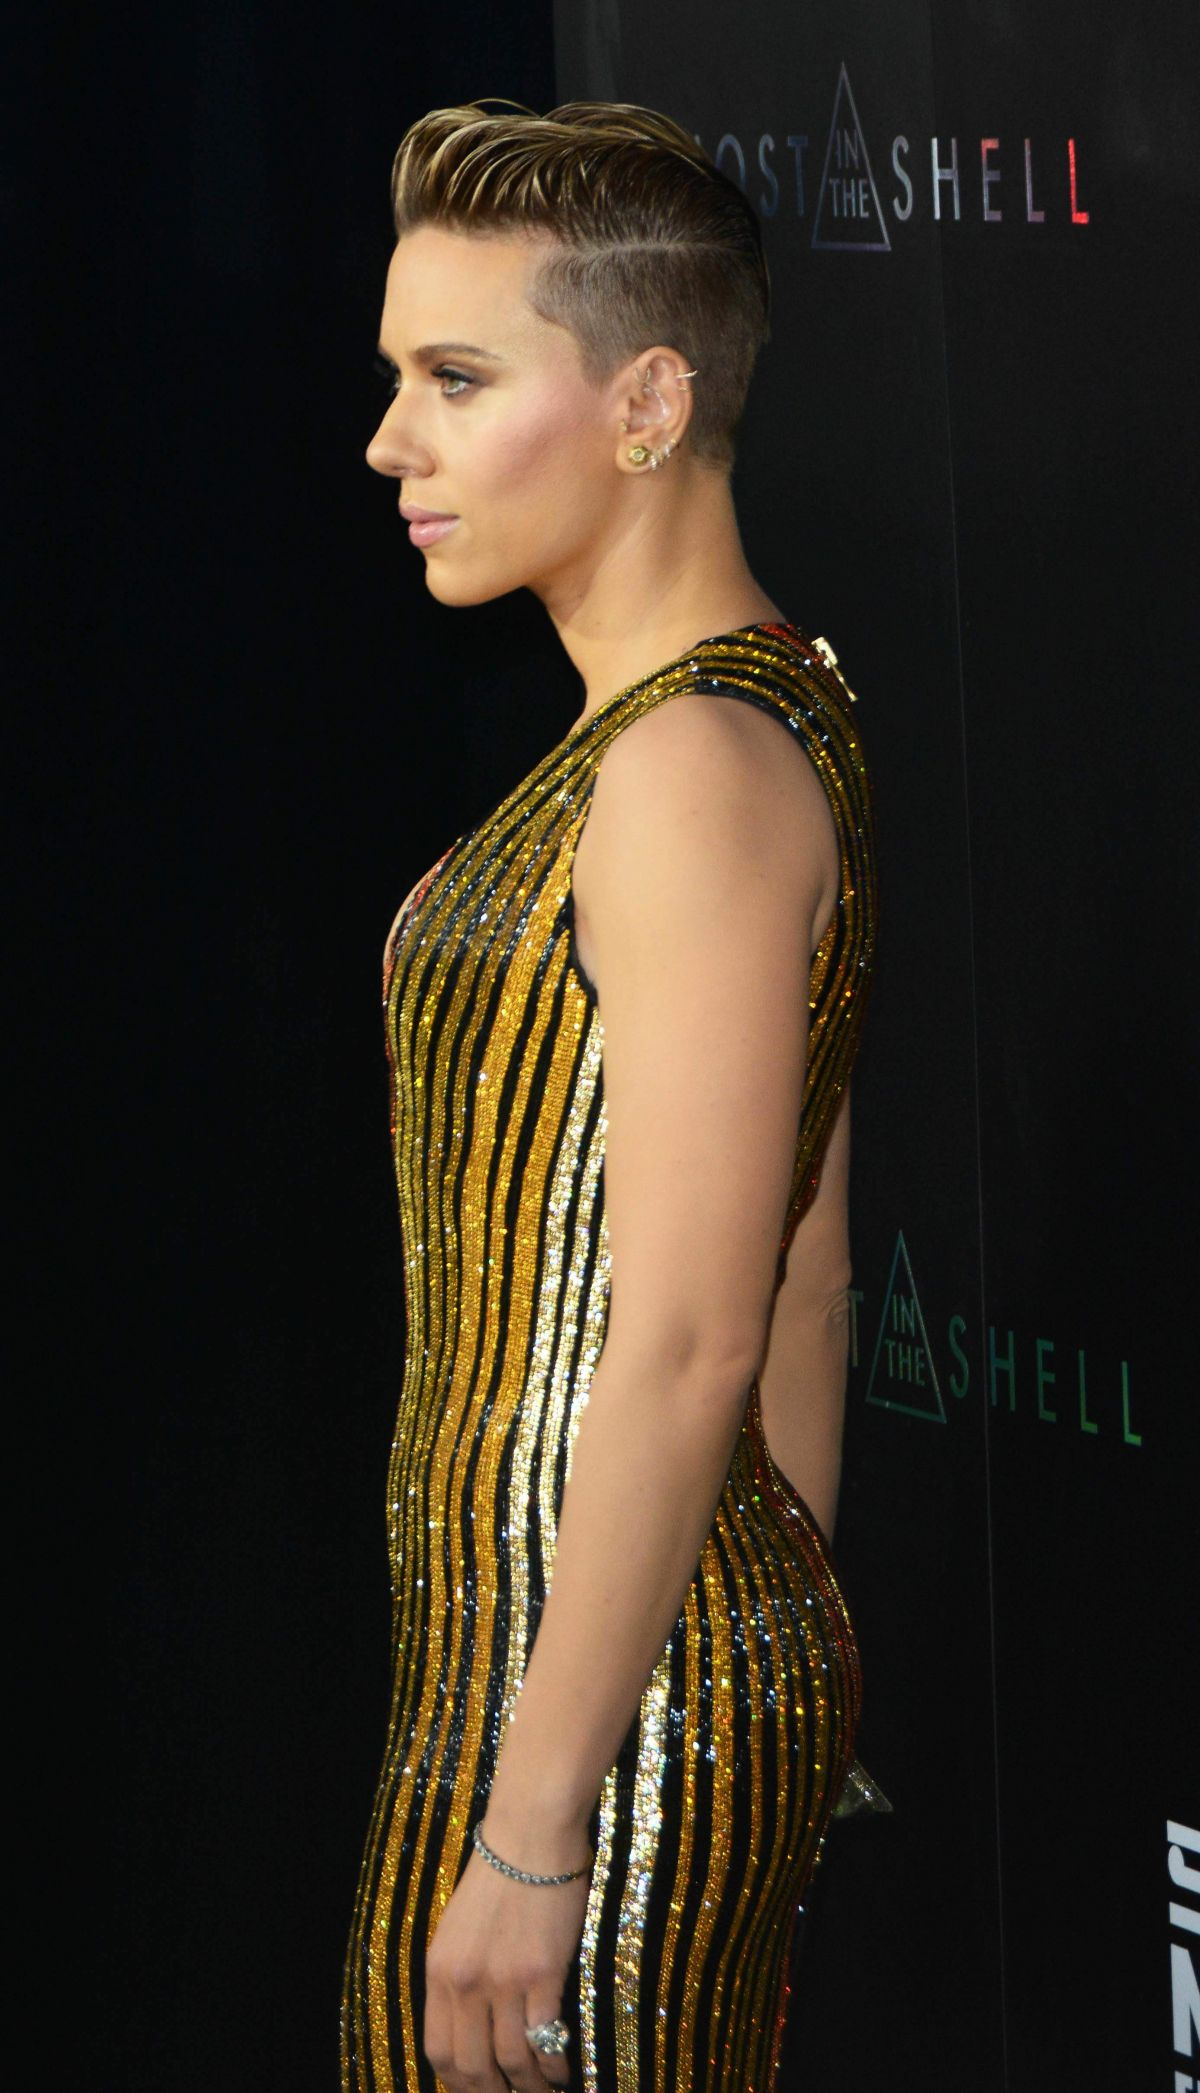 Scarlett Johansson At Ghost In The Shell Premiere In New York 05 29 2017 7 Hawtcelebs